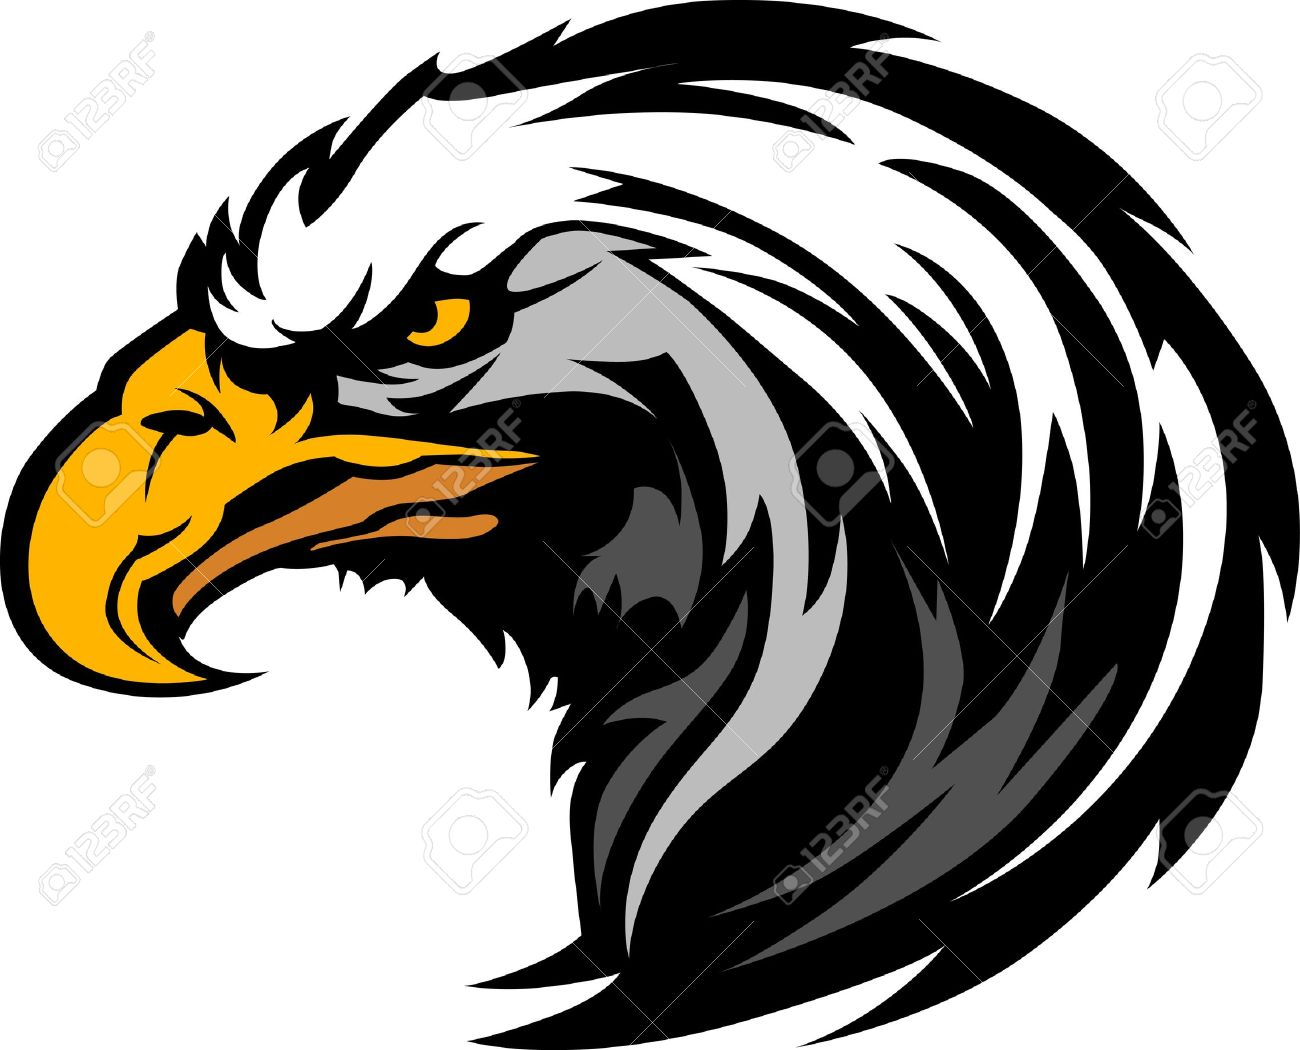 hight resolution of graphic head of an eagle mascot stock vector 10457685